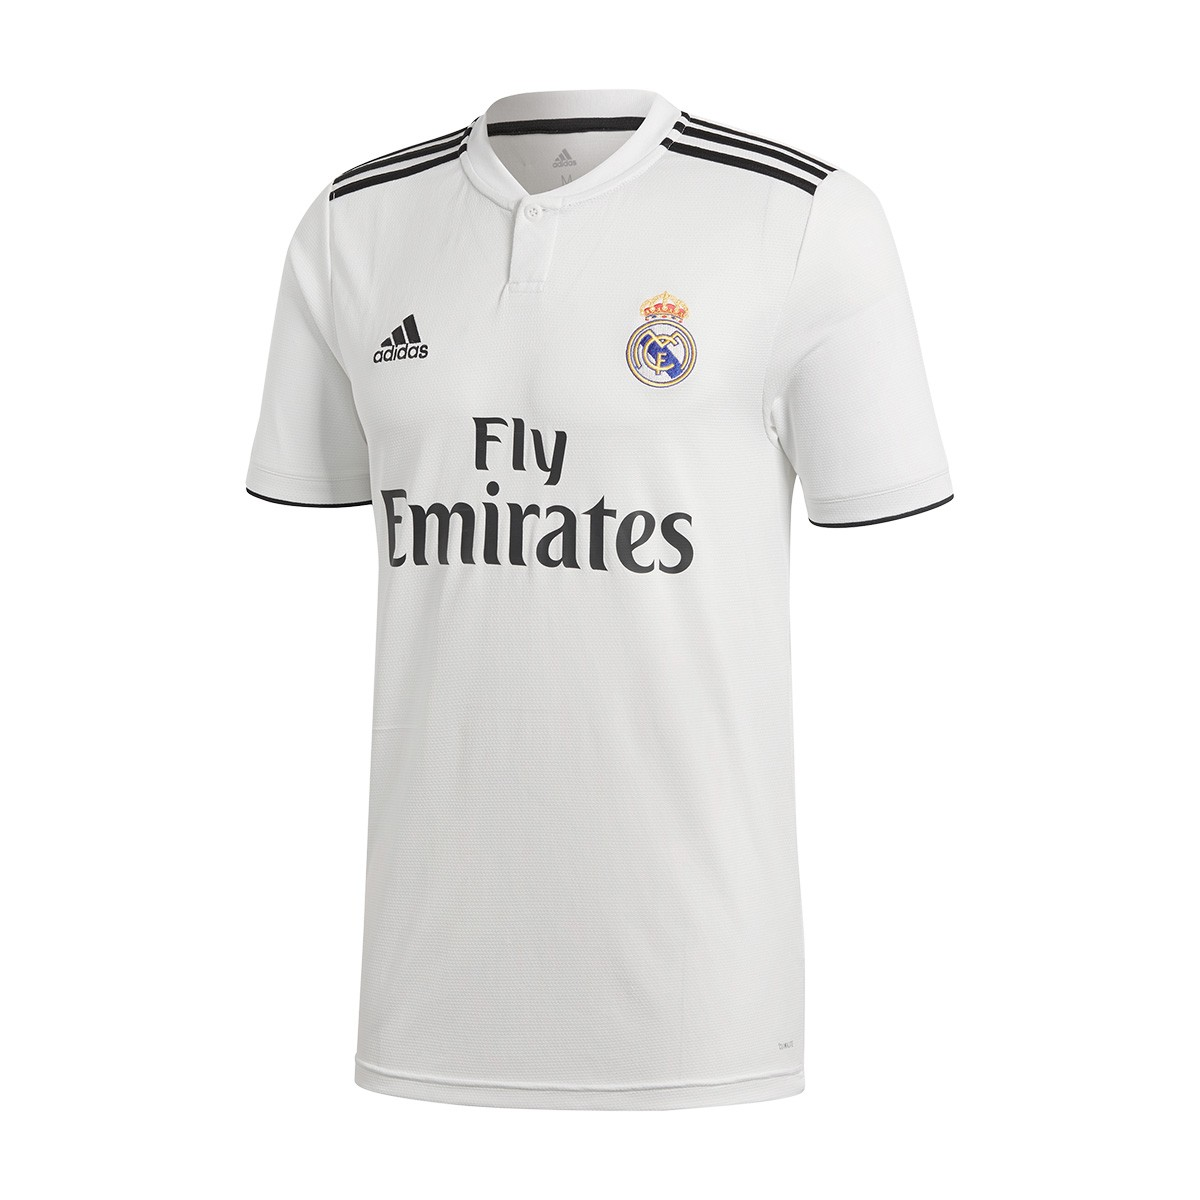 fcf5187d766 Jersey adidas Real Madrid 2018-2019 Home White-black - Football ...